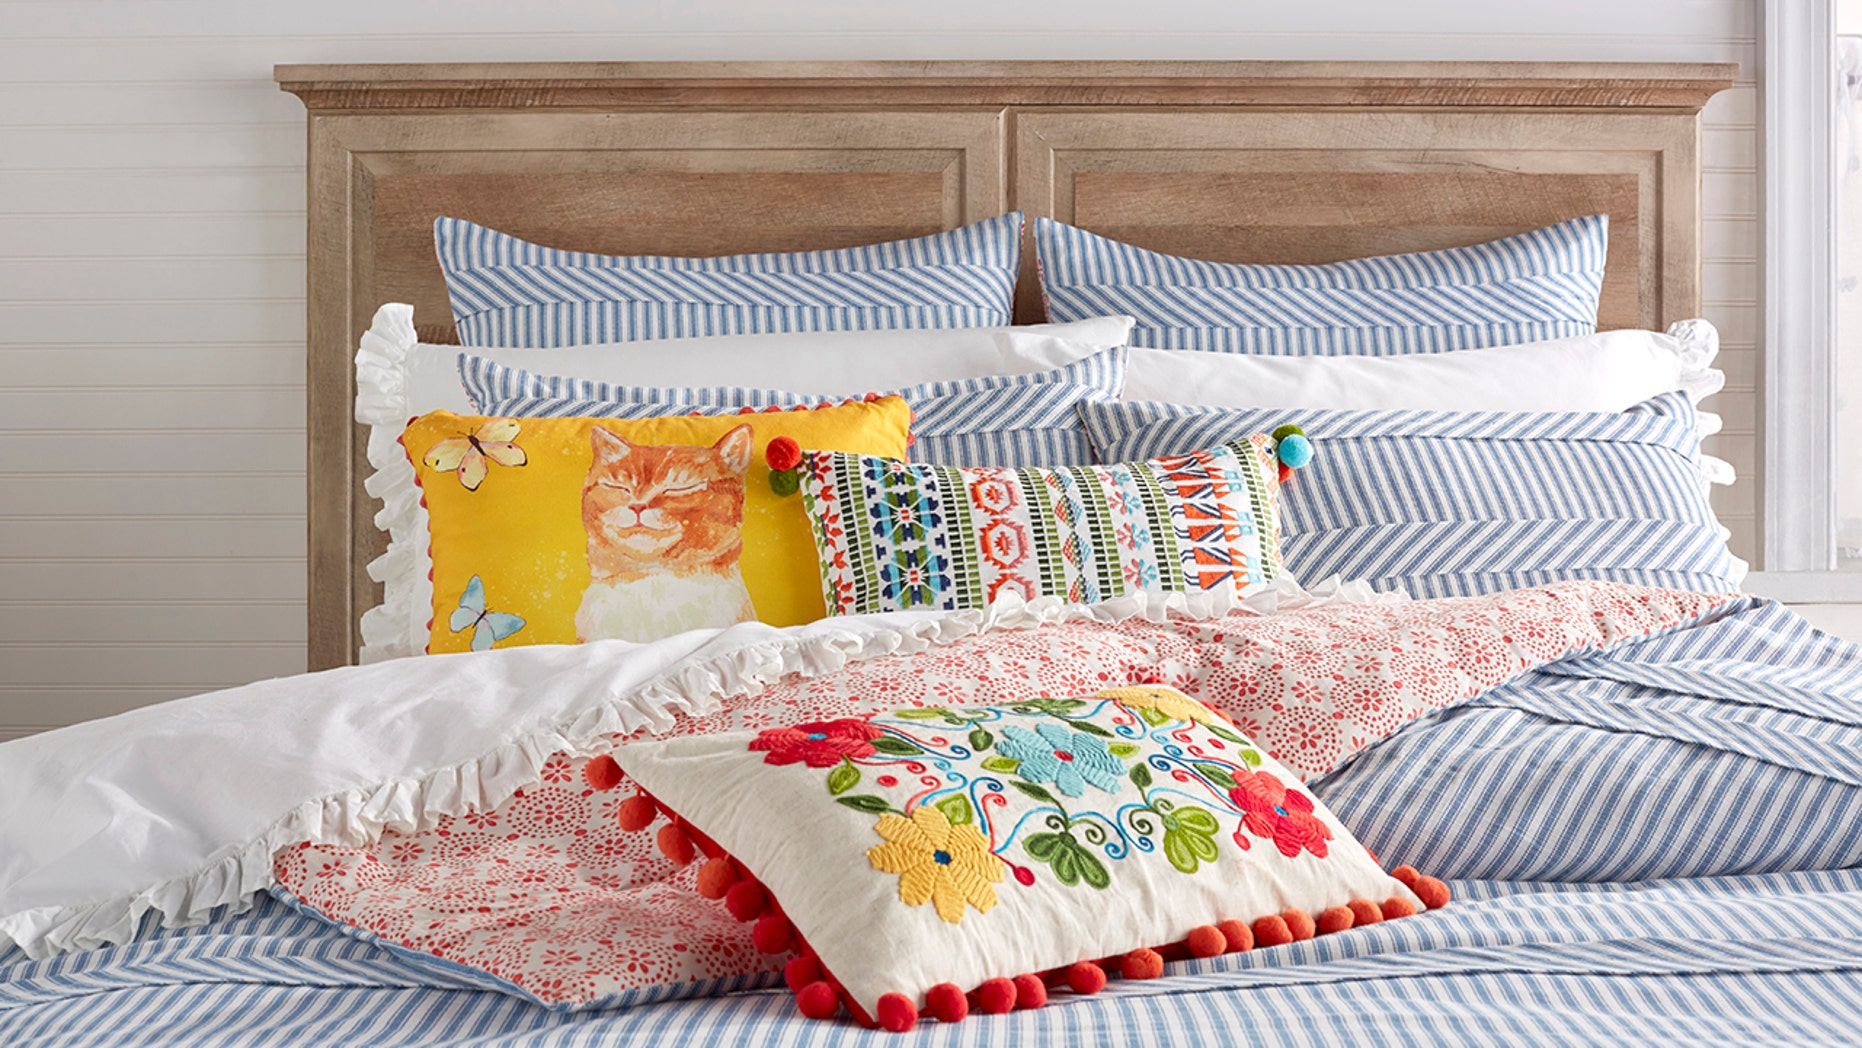 Ree Drummond launches new line of bedding.